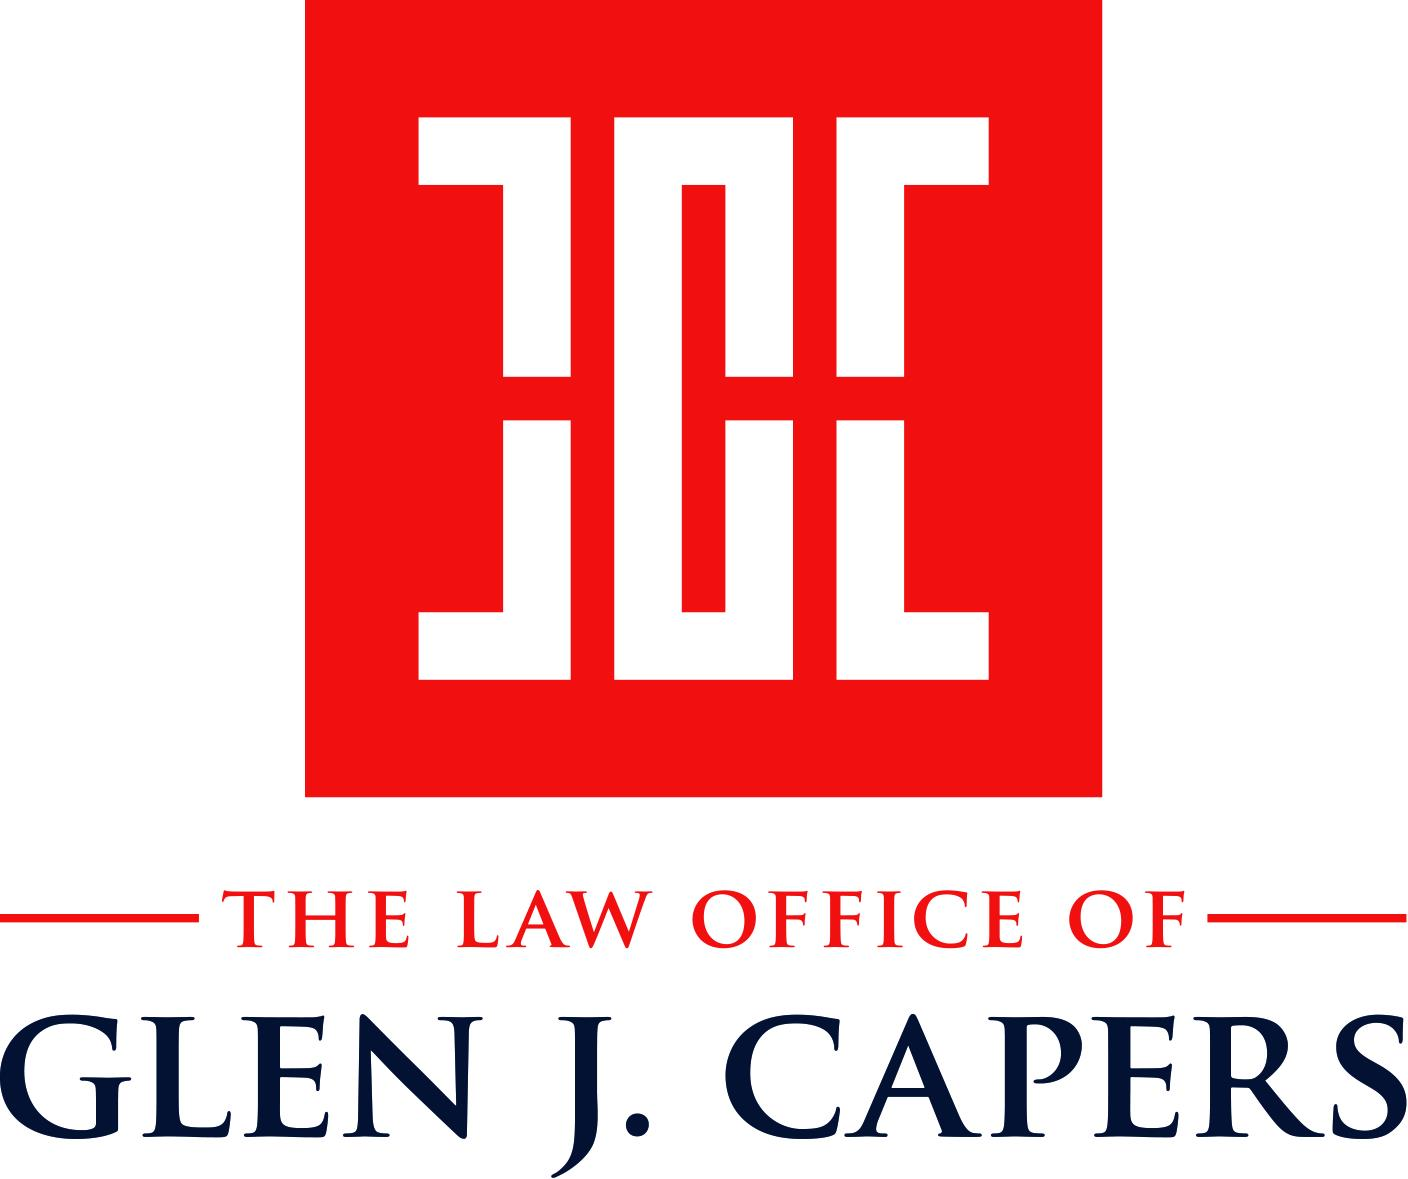 The Law Office of Glen J. Capers